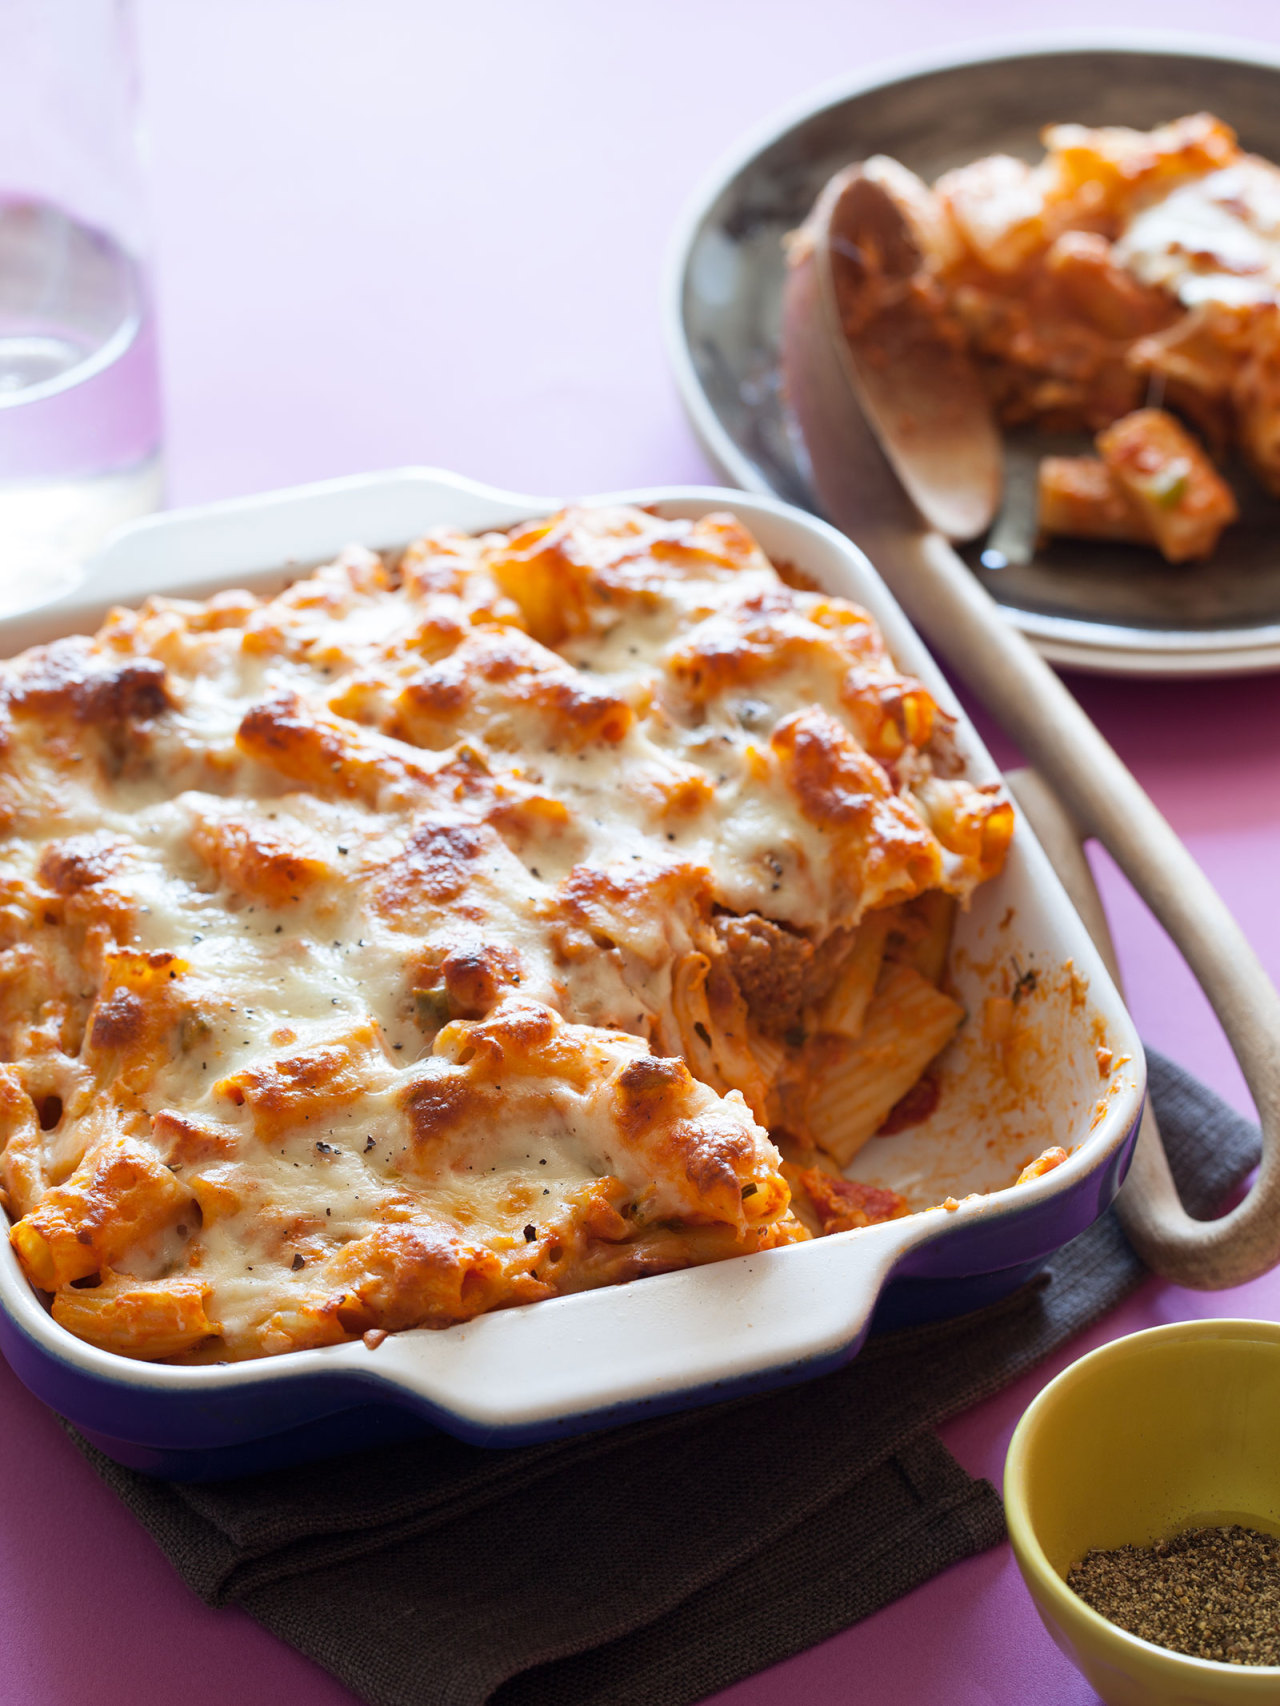 Recipe: Baked Ziti